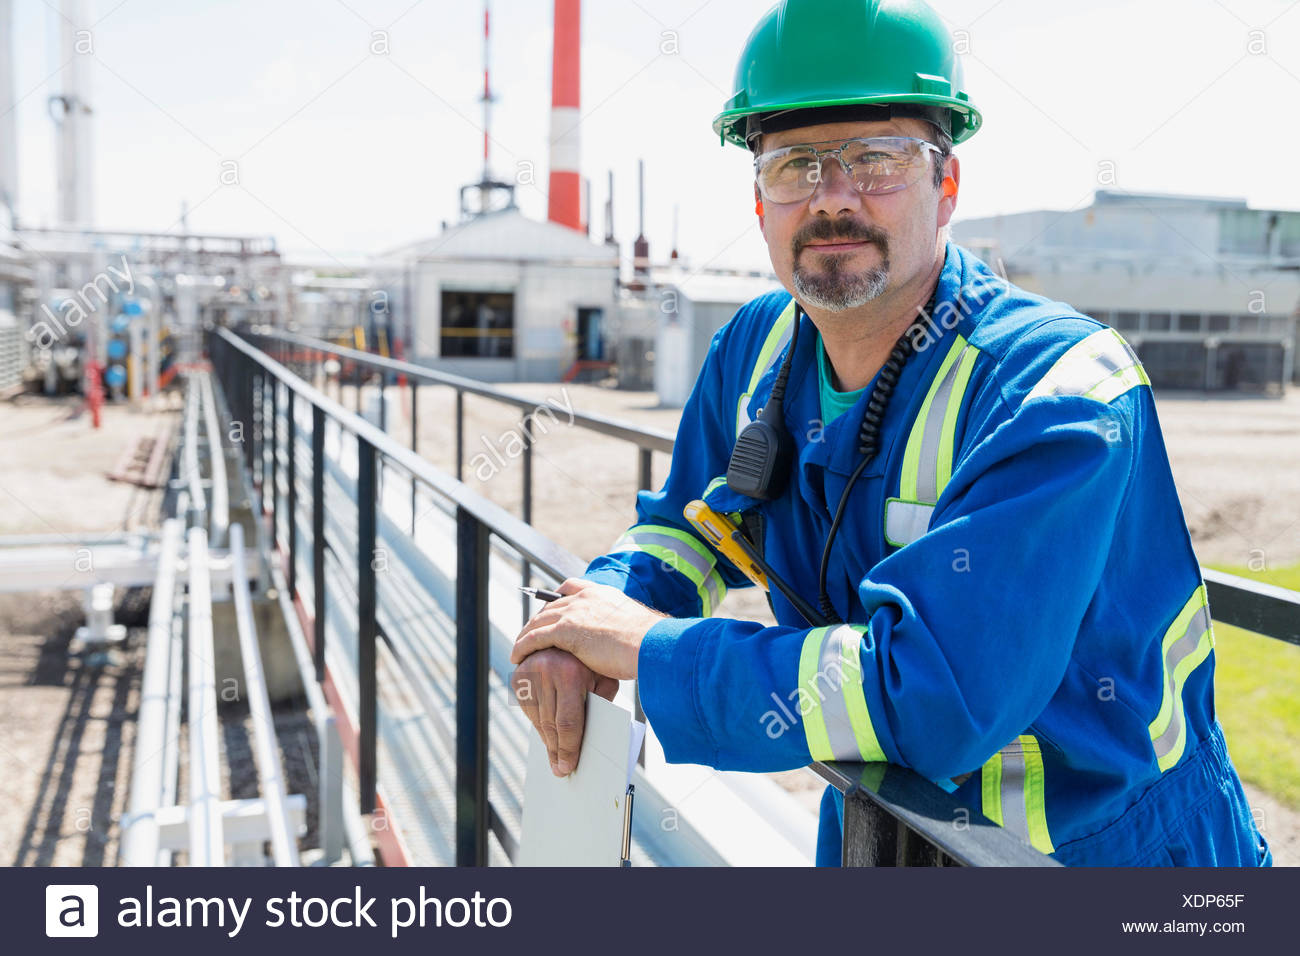 Portrait of worker on platform outside gas plant Stock Photo